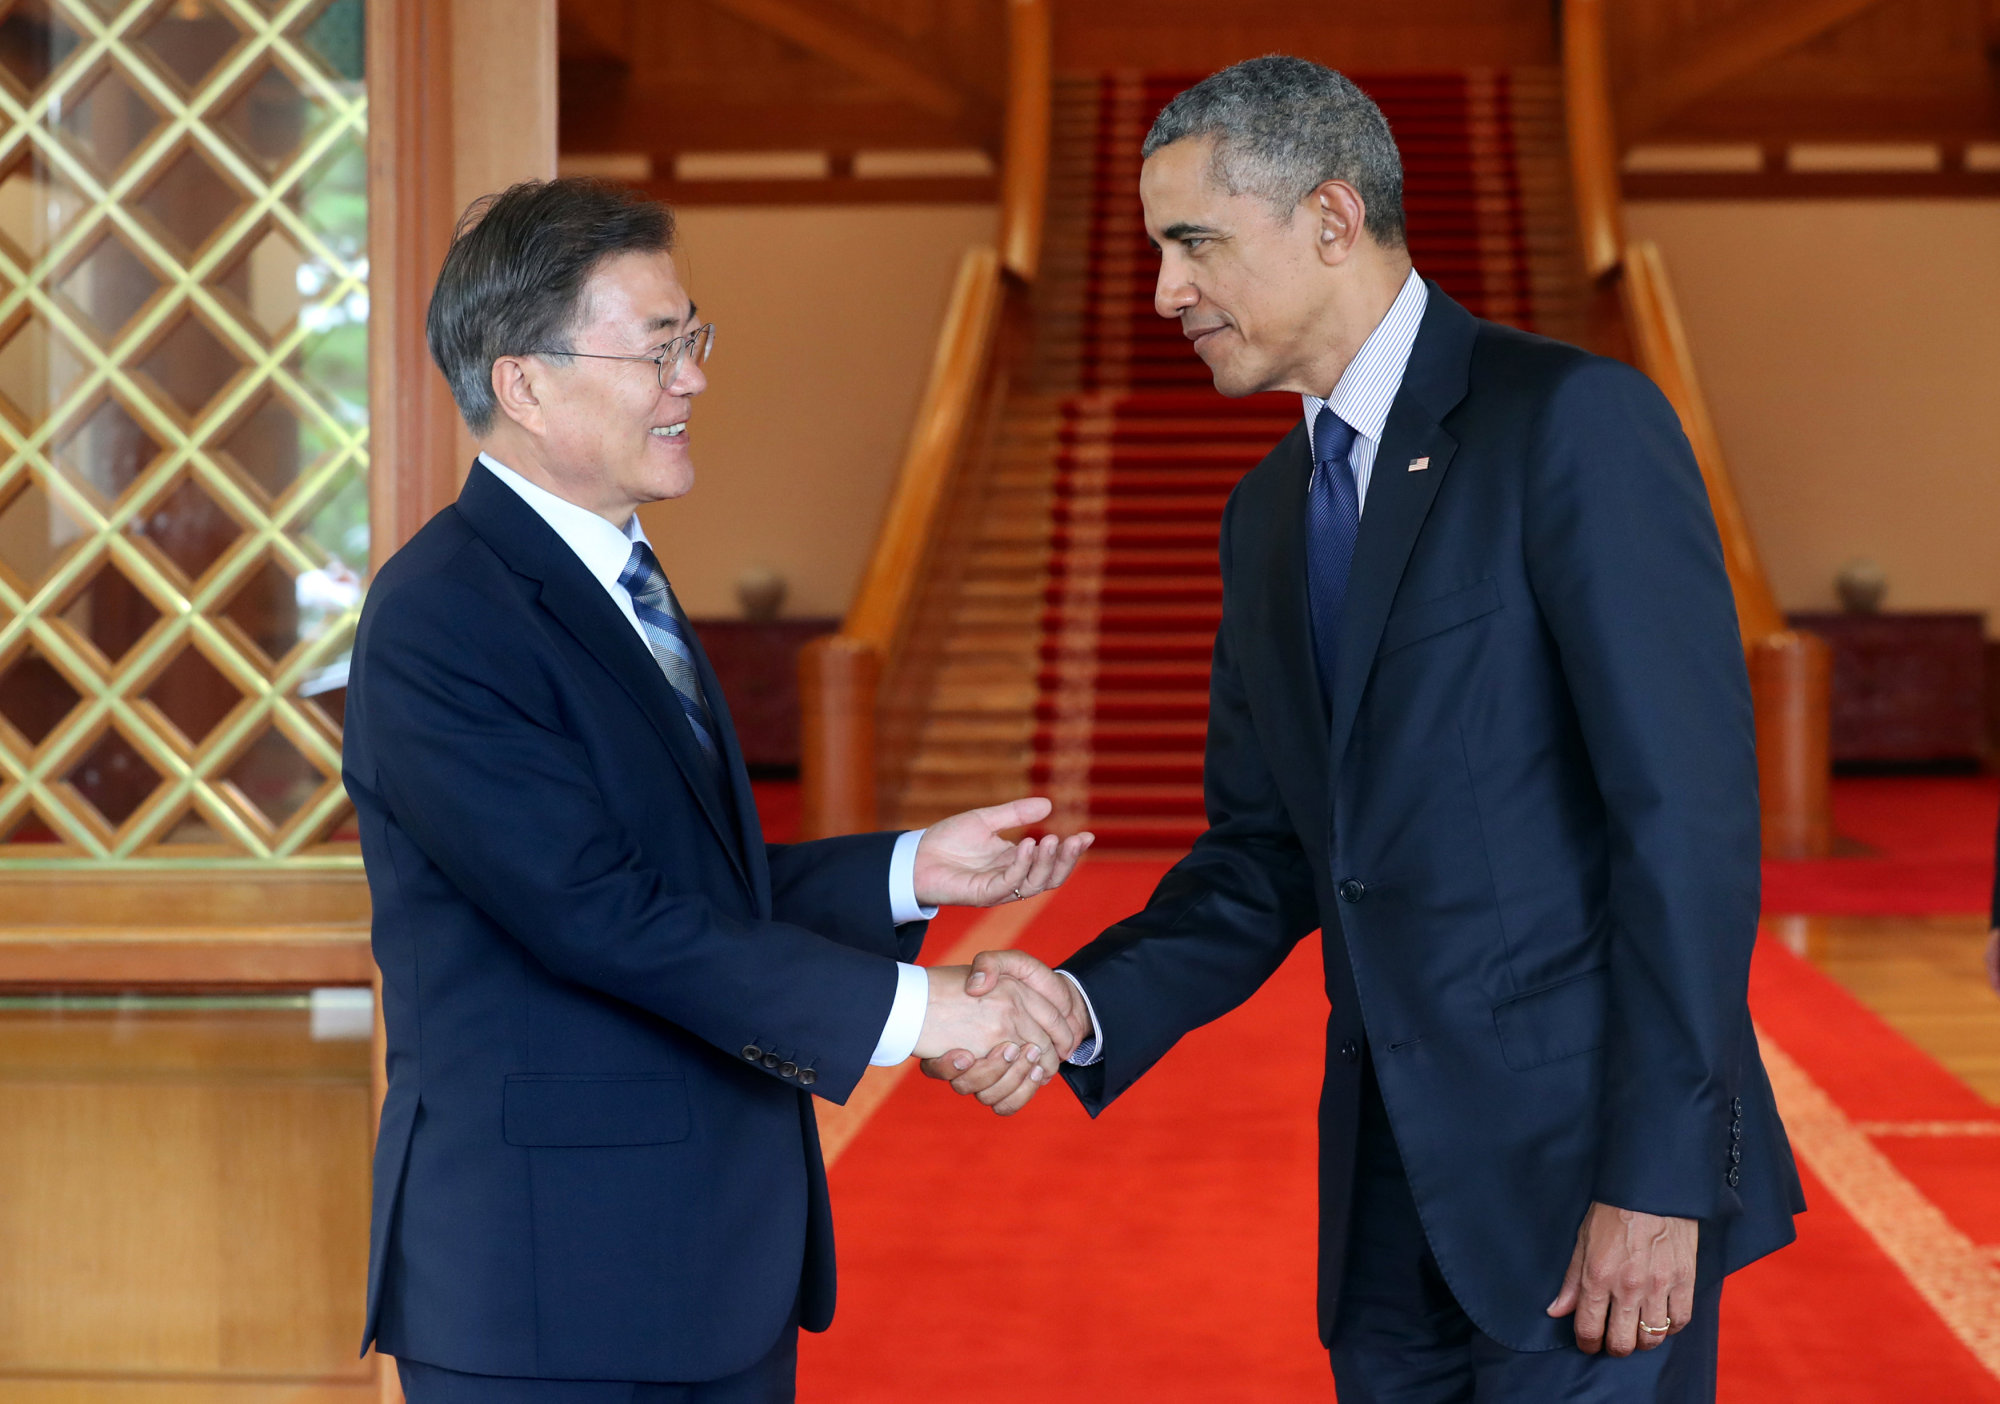 South Korean President Moon Jae-in shakes hands with former U.S. President Barack Obama at the Presidential Blue House in Seoul on Monday.   REUTERS